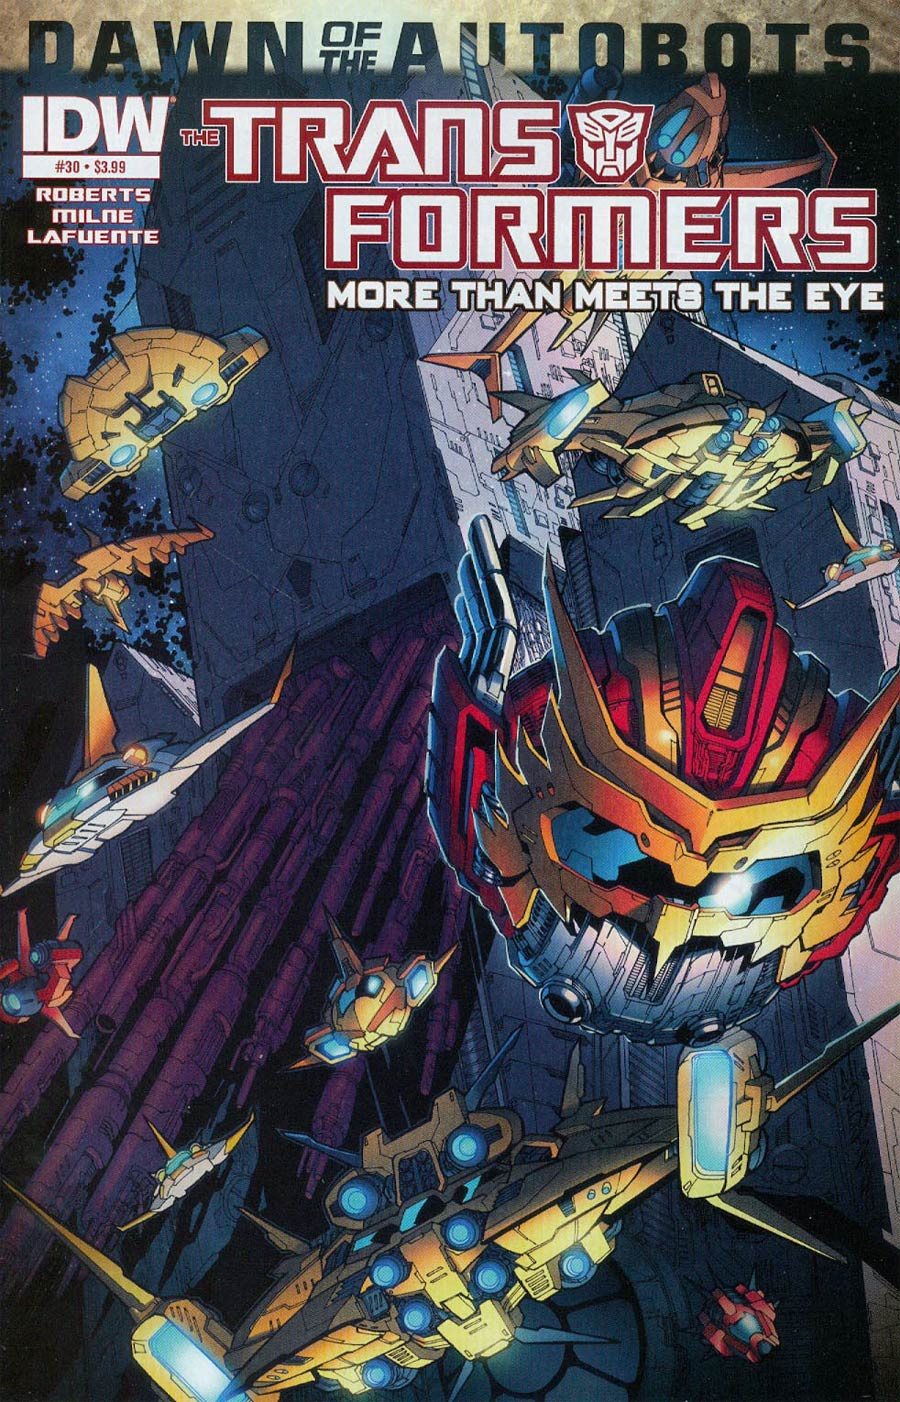 Transformers More Than Meets The Eye #30 Cover A Regular Alex Milne Cover (Dawn Of The Autobots Tie-In)